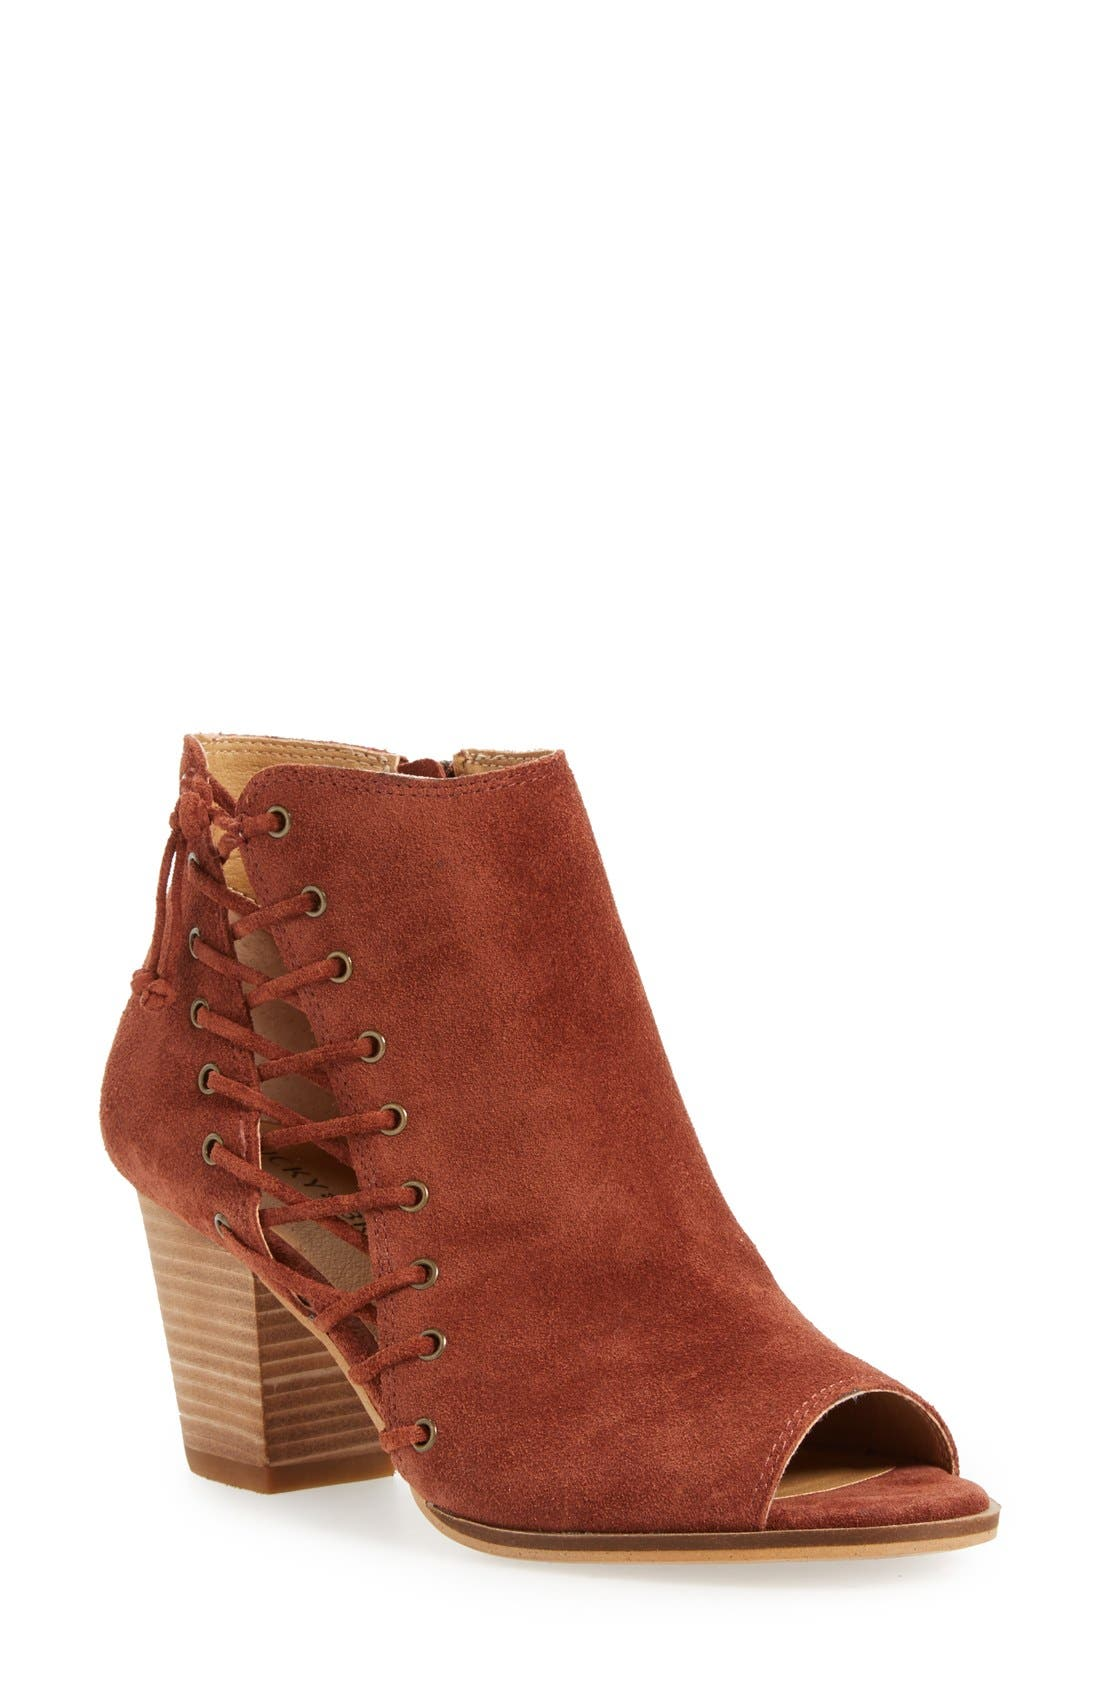 LUCKY BRAND 'Hartlee' Open Toe Bootie